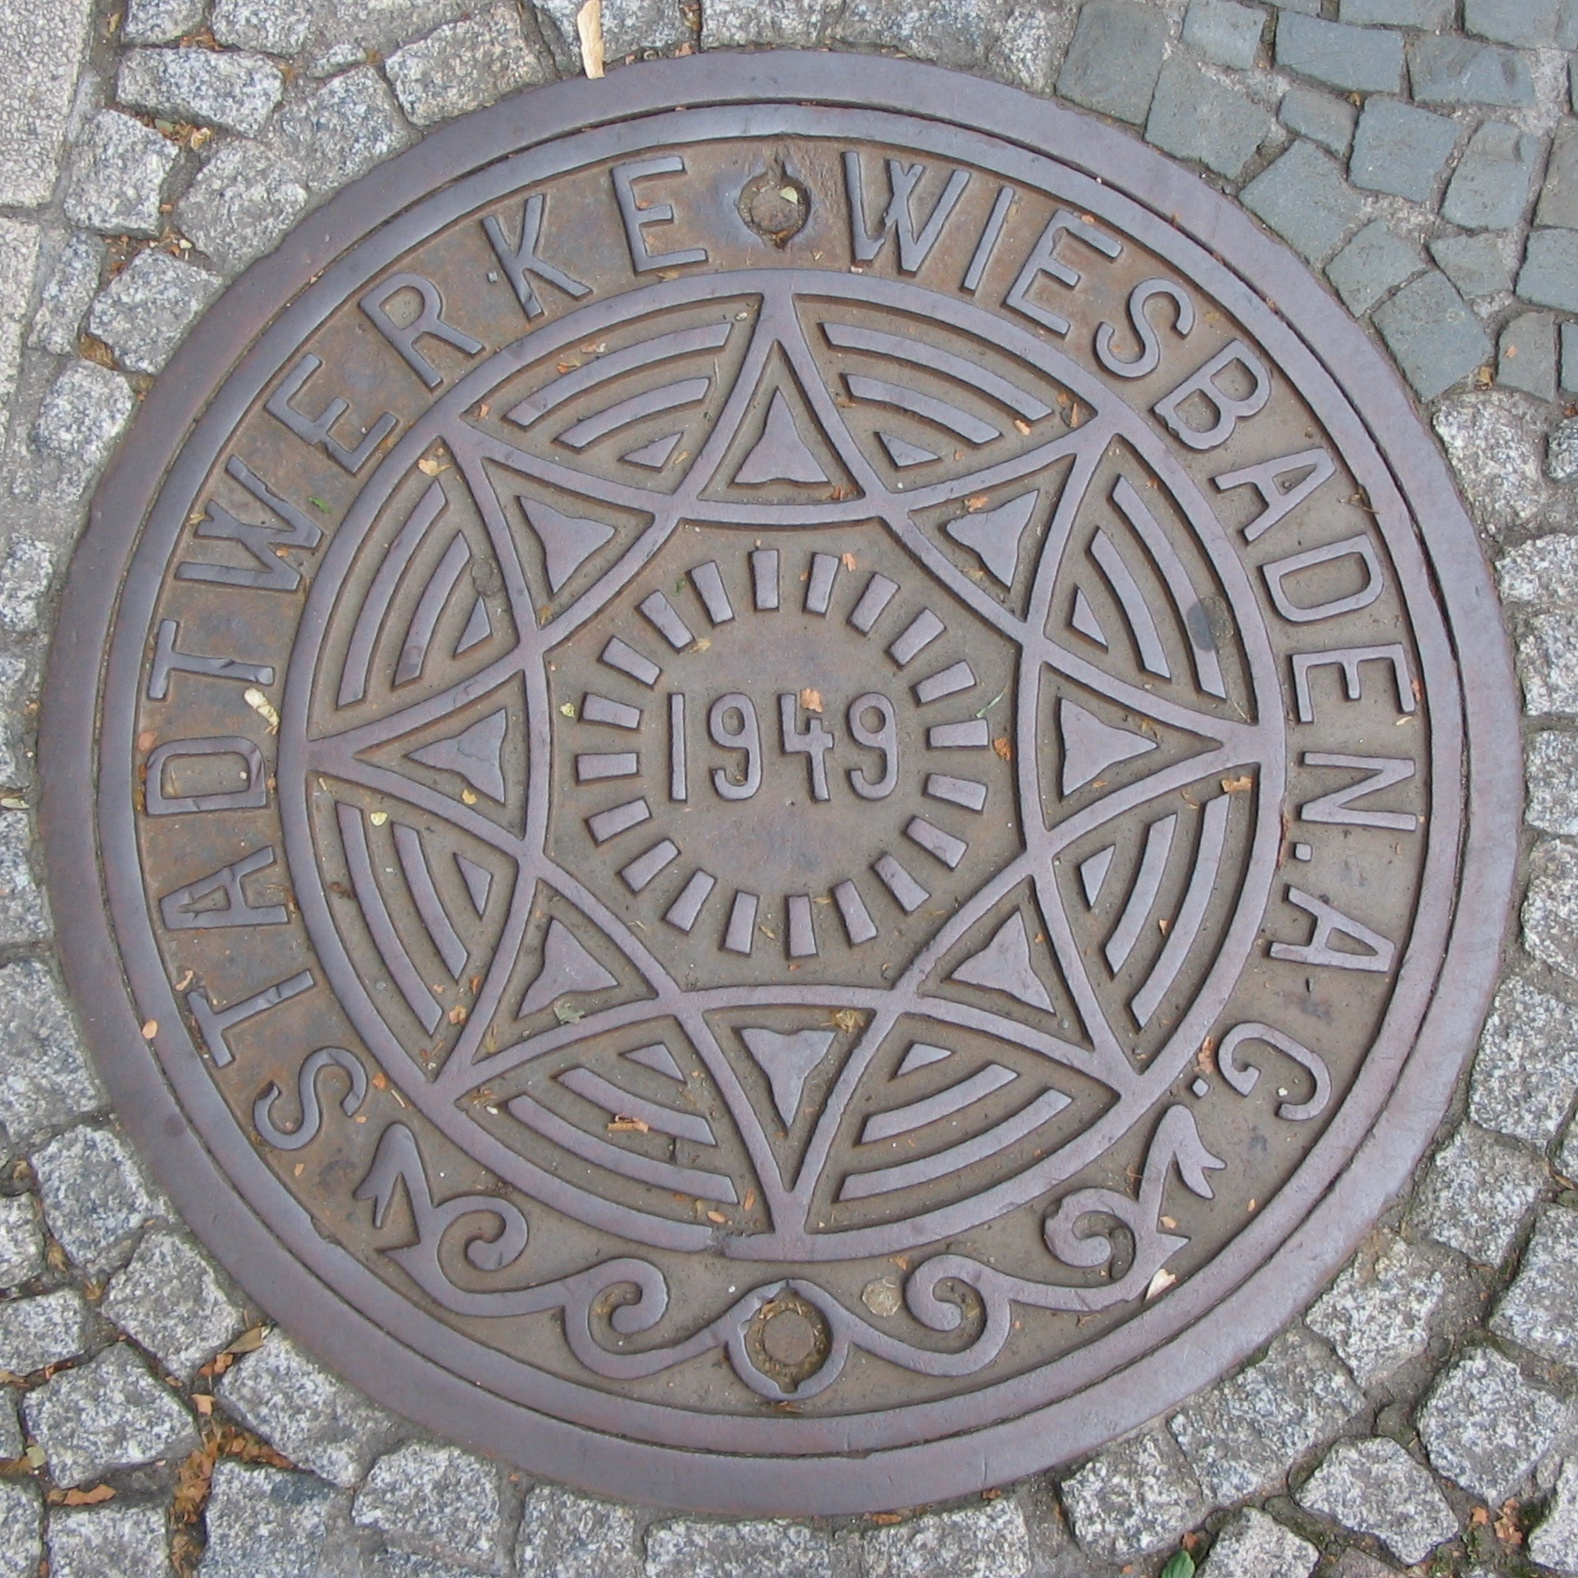 file manhole cover wiesbaden wikimedia commons. Black Bedroom Furniture Sets. Home Design Ideas